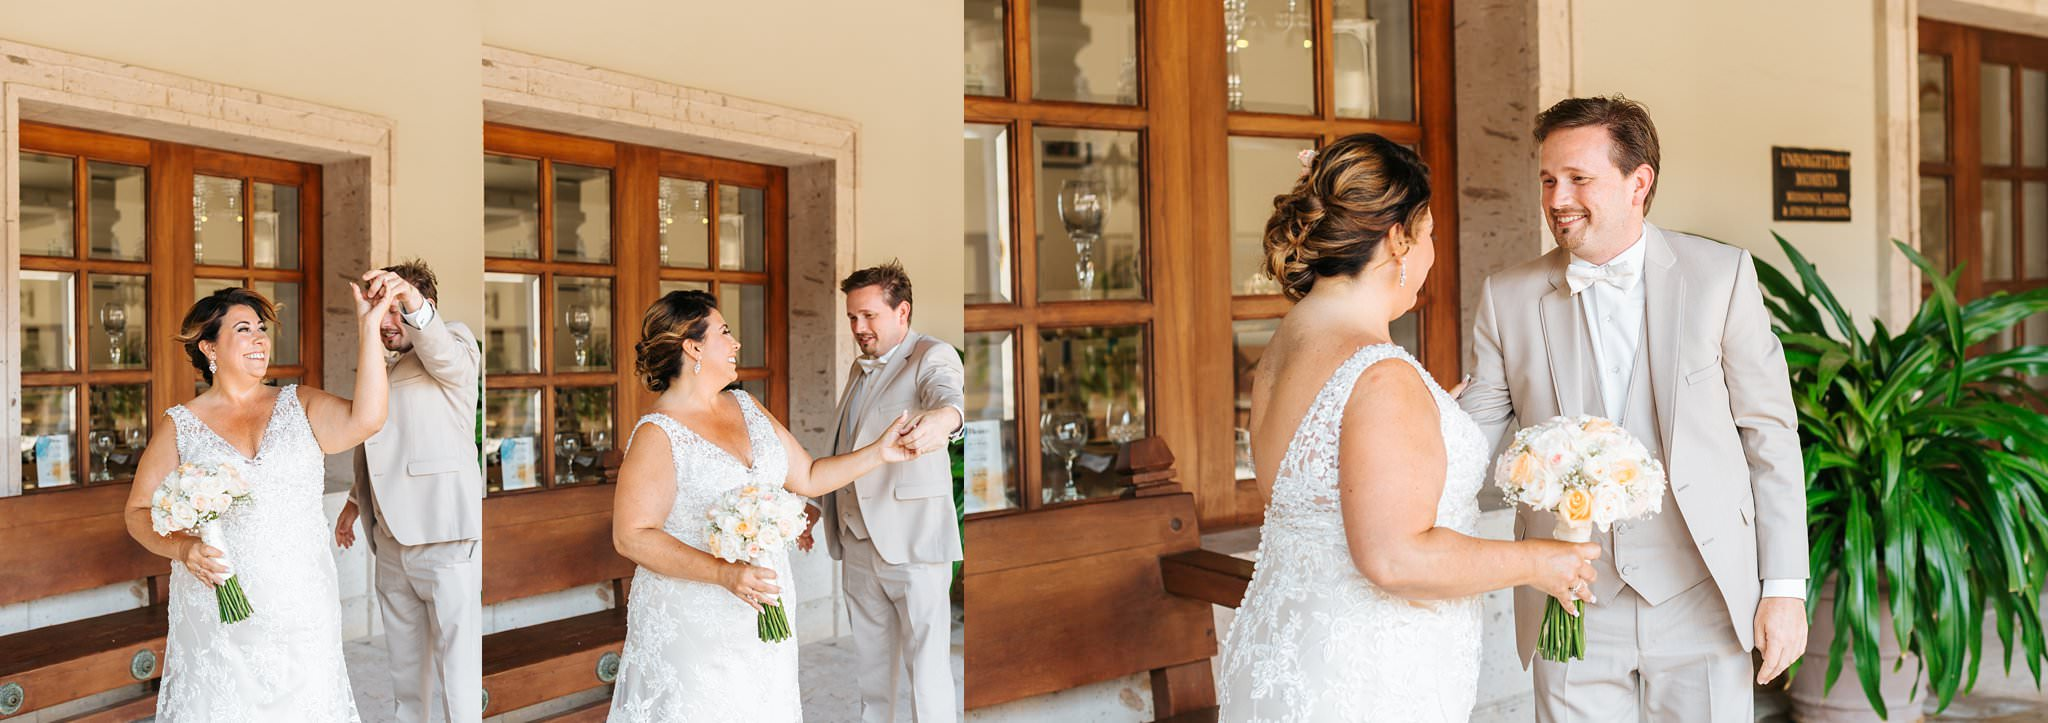 Groom sees bride for the first time - Cabo Destination Wedding - https://brittneyhannonphotography.com